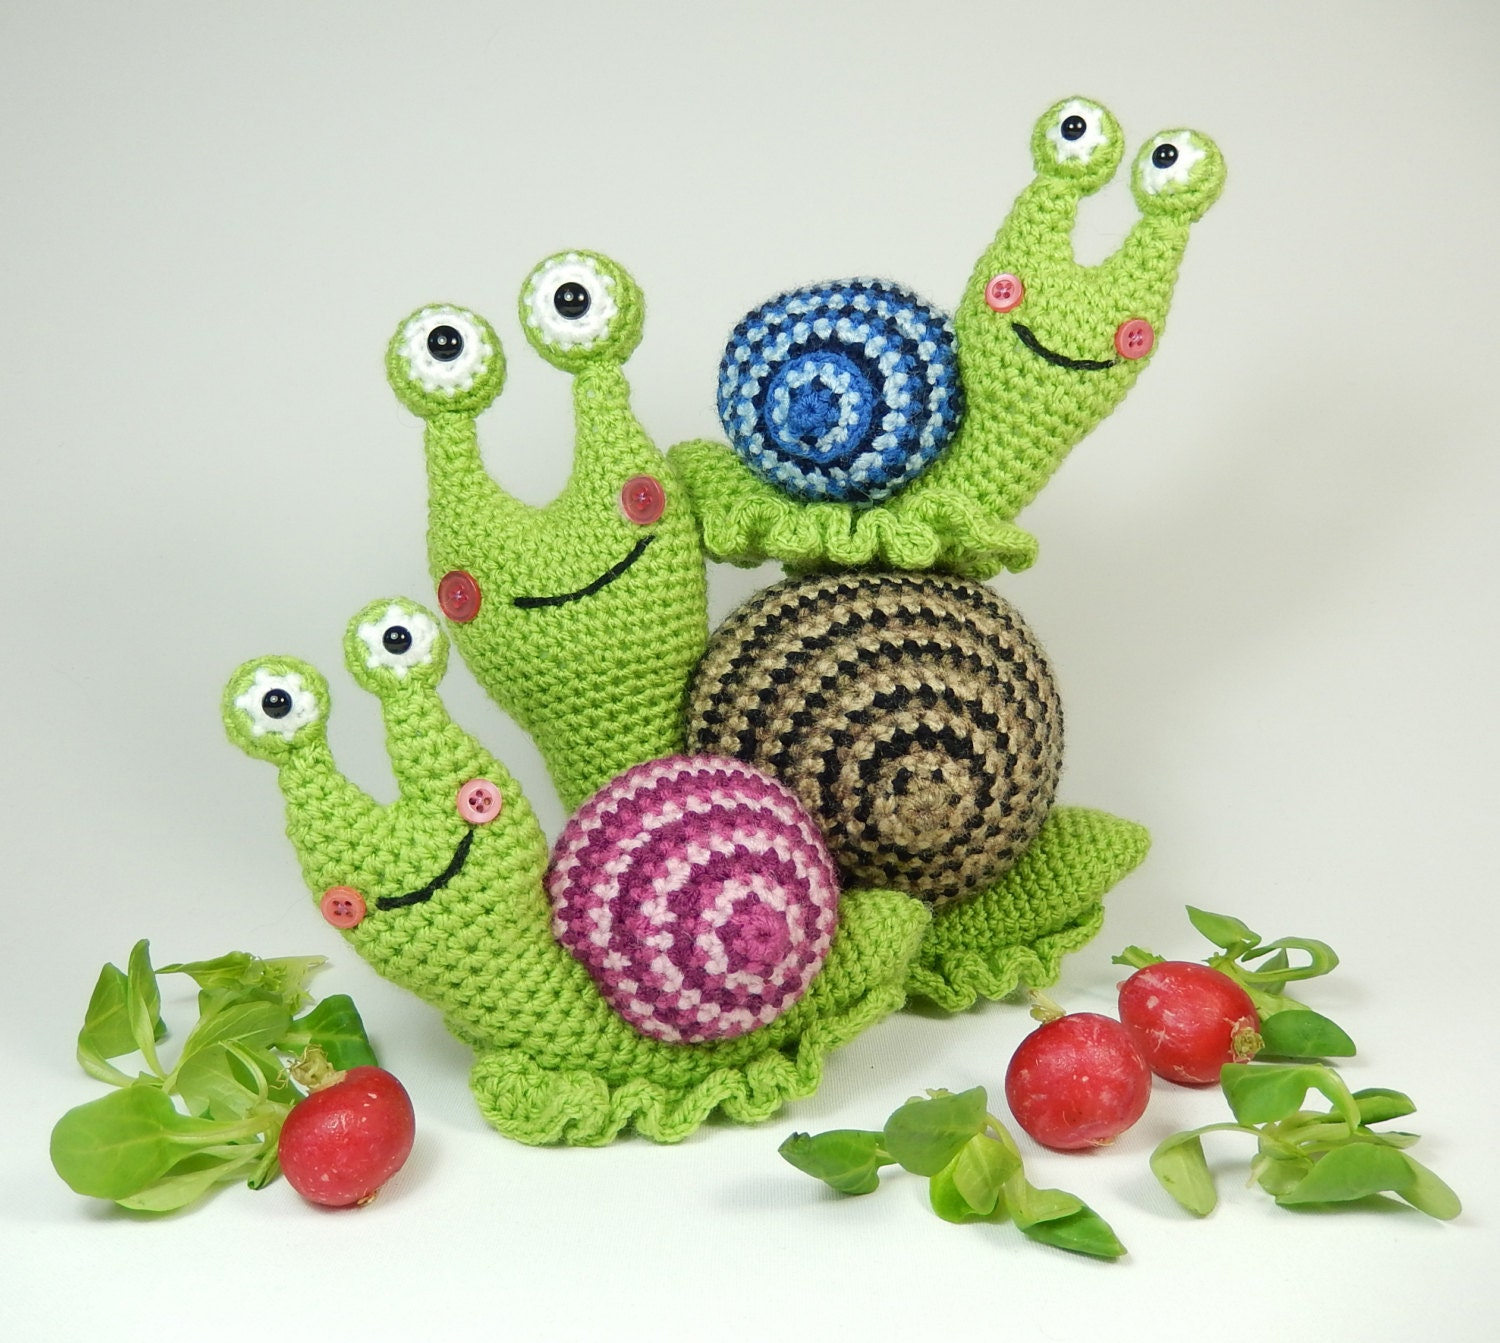 Newborn Snail Crochet Pattern Free : Shelley the Snail and Family Amigurumi Crochet by ...